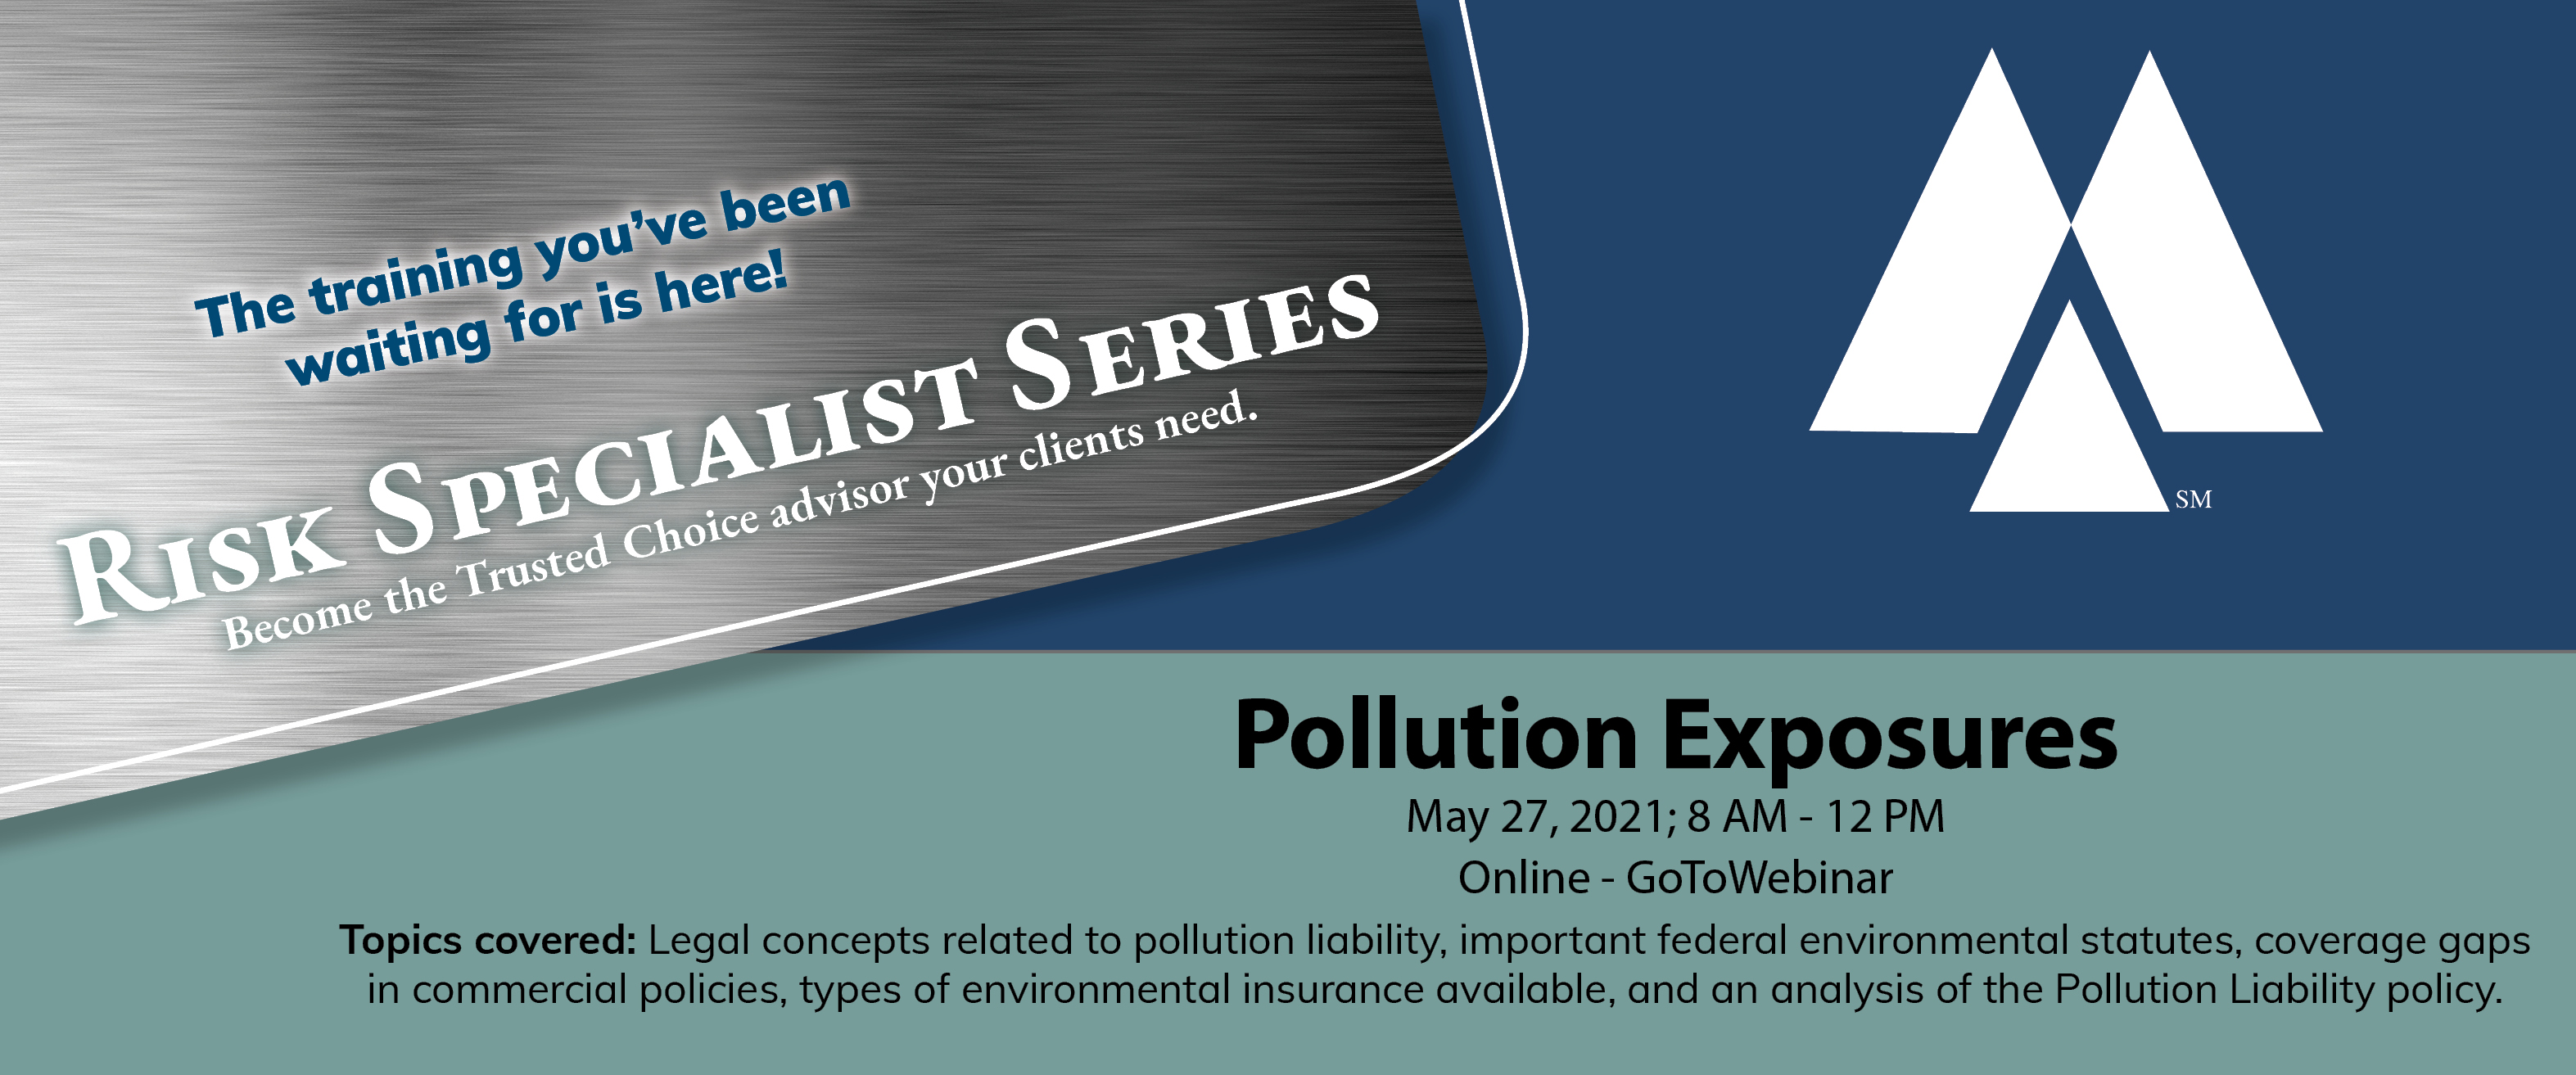 Risk Specialist Series: Pollution Exposures